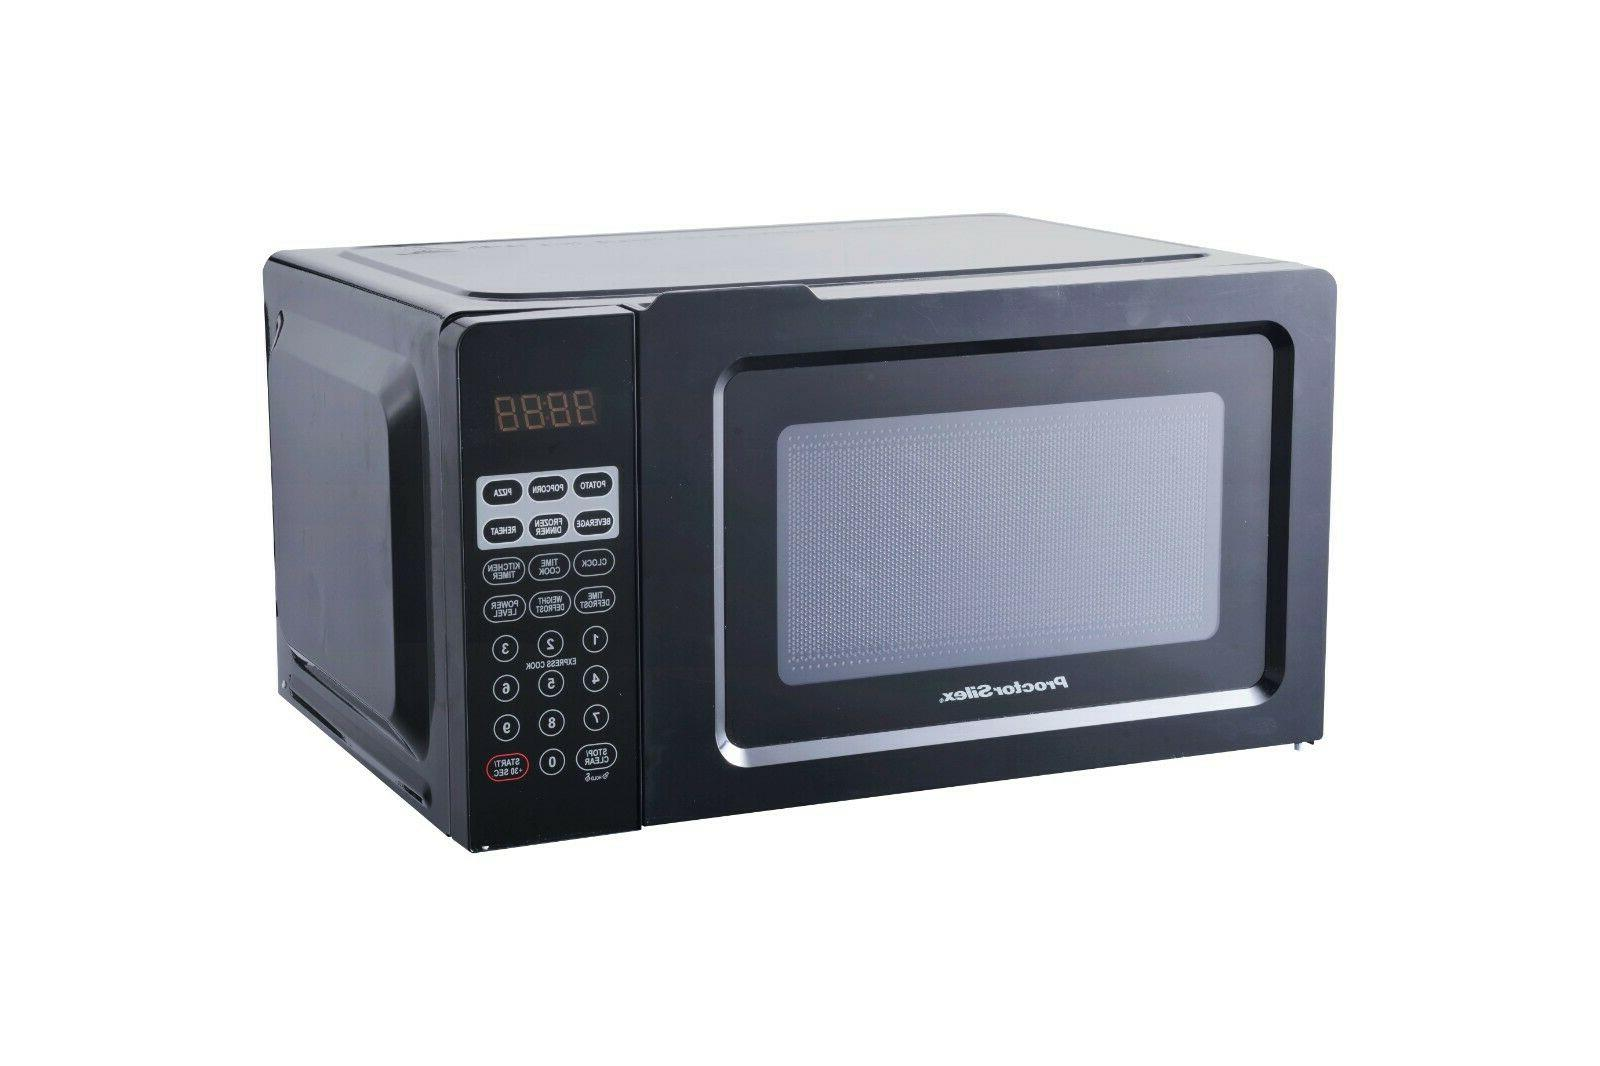 Countertop Oven Home Office LED 0.7 700W